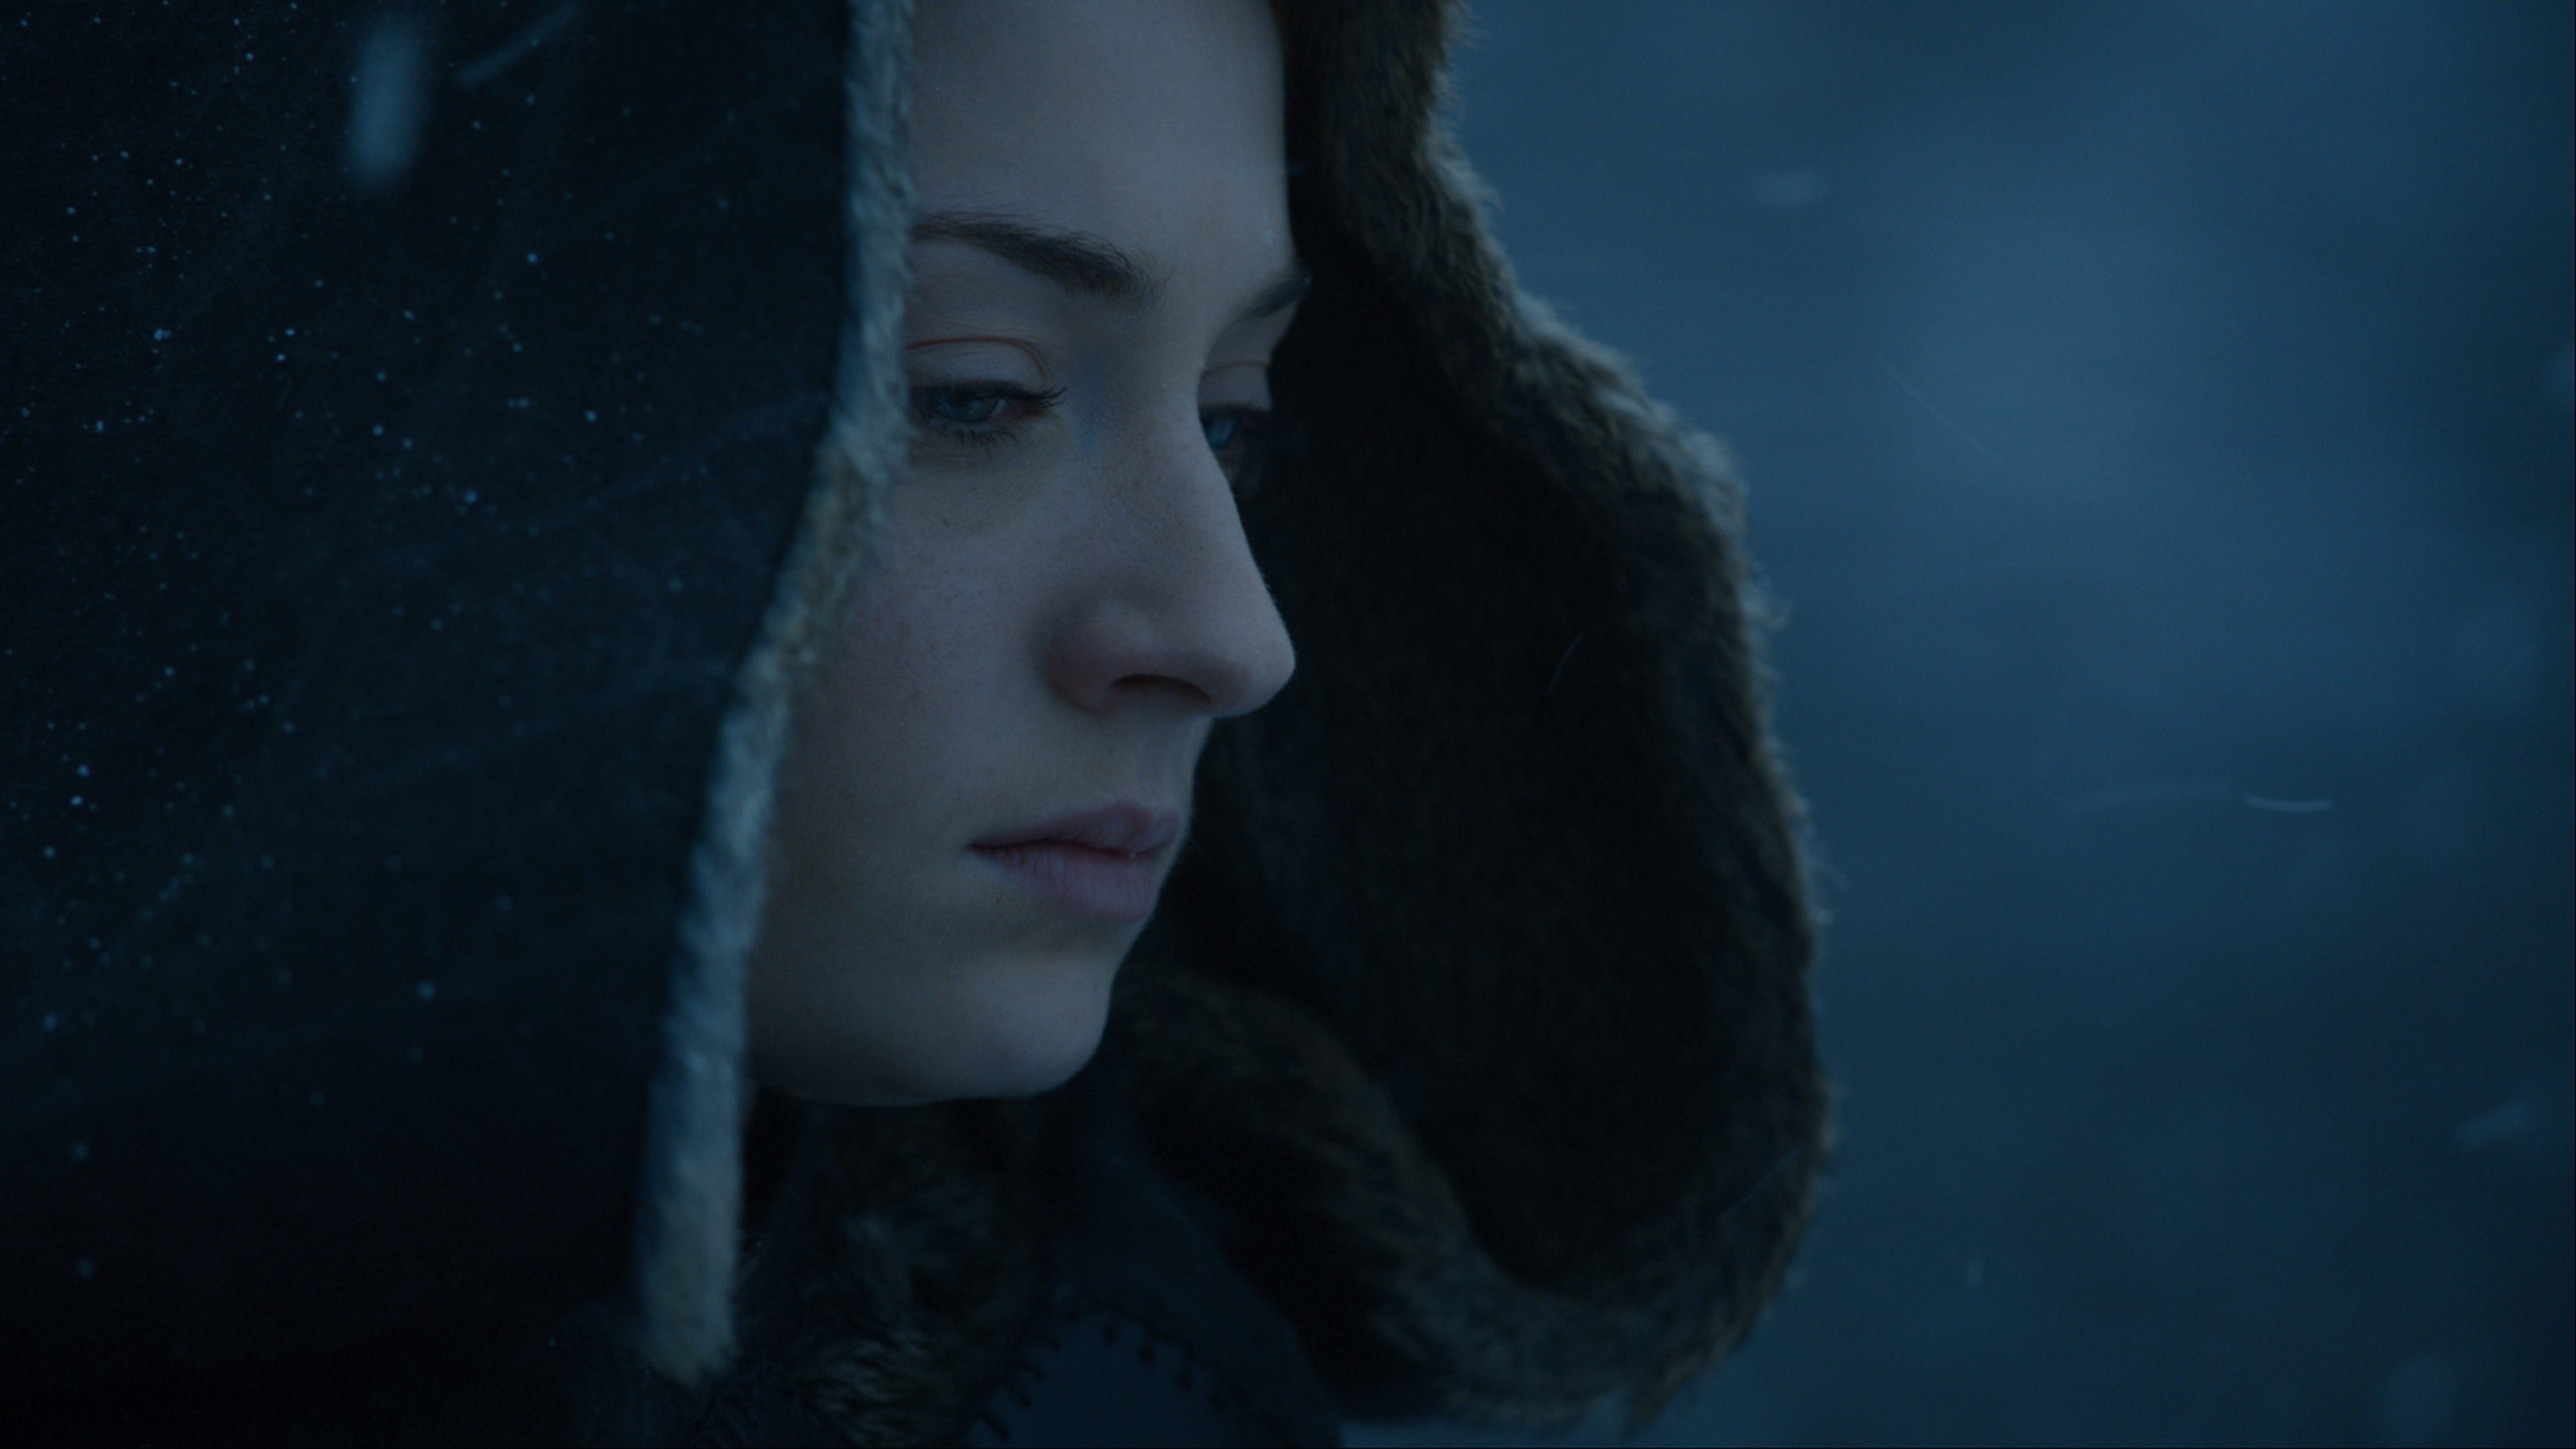 """832cf6cc12031d950e4259aca9529df4c2180a00651f0f979de7552a4fe3582c Recapping Game of Thrones: Family Comes First in """"The Dragon and the Wolf"""""""